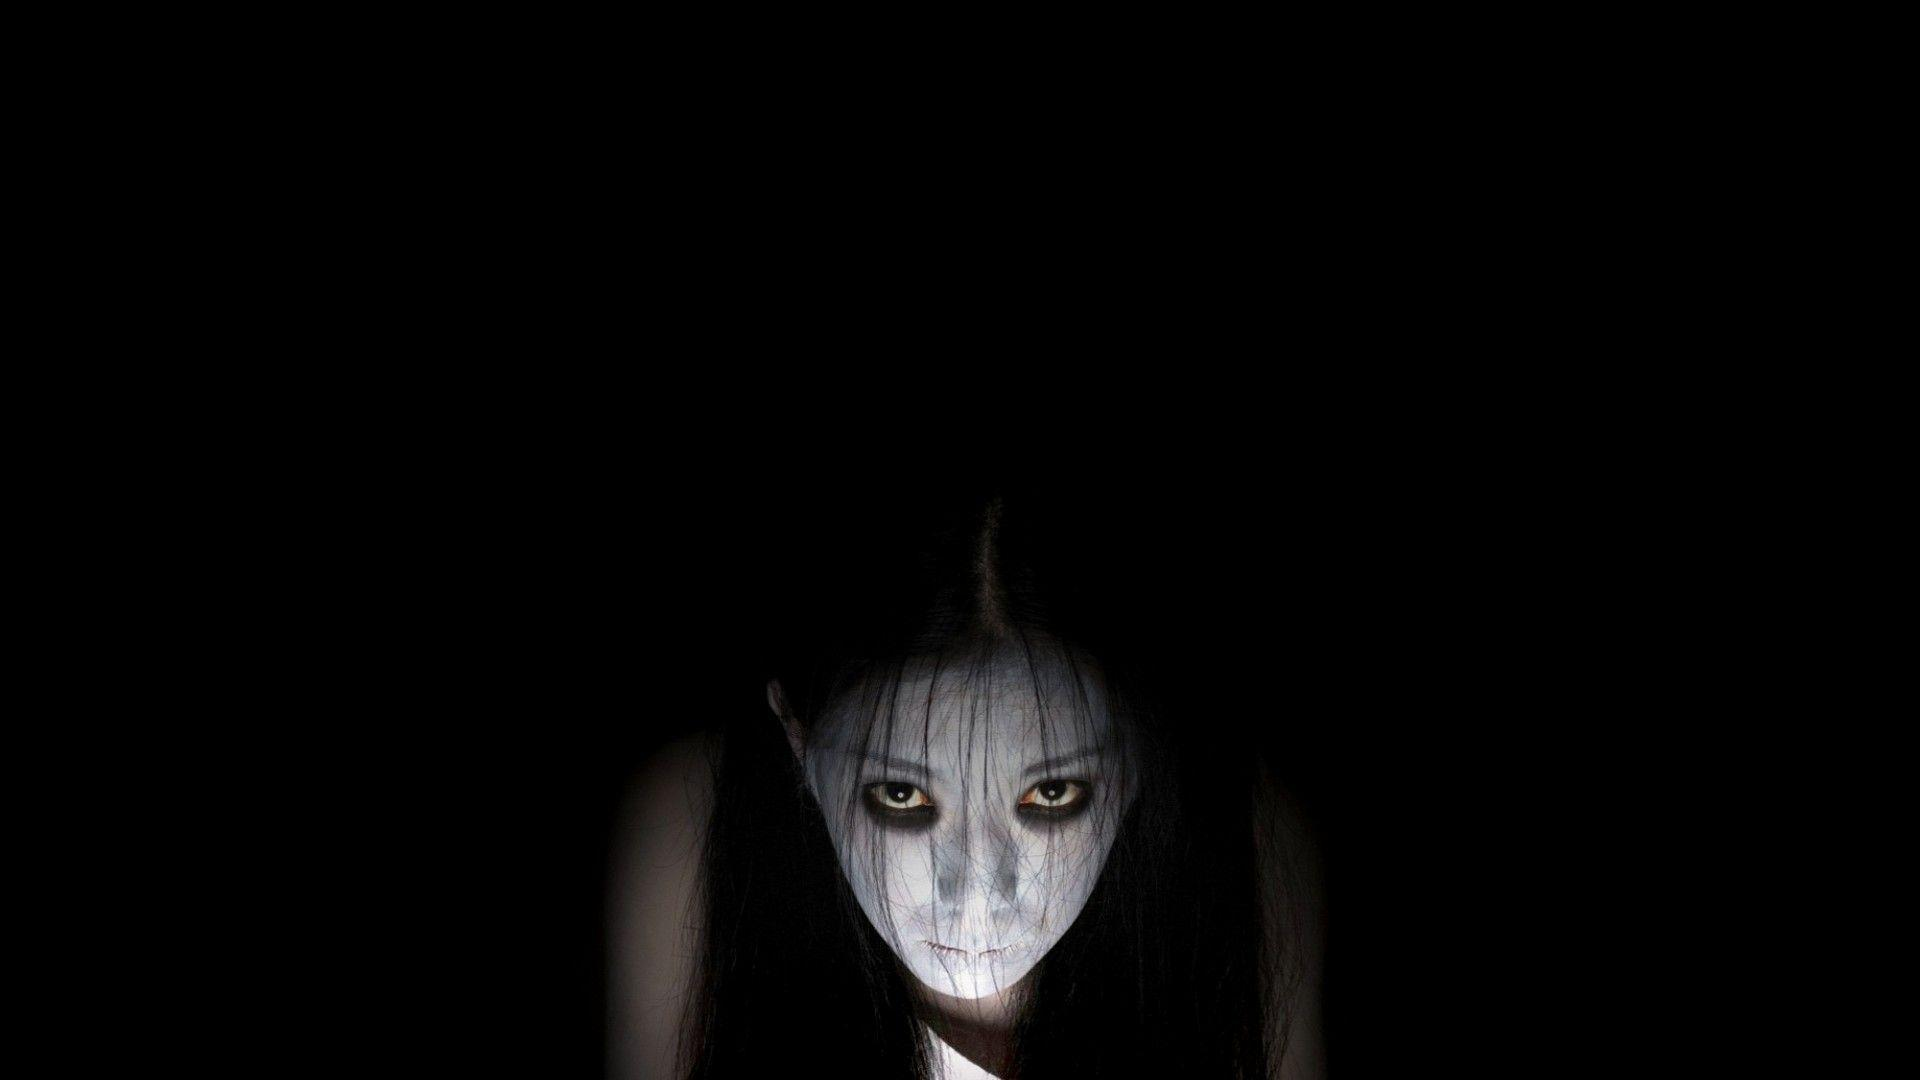 The Grudge, Horror, Face HD Wallpapers / Desktop and Mobile Image